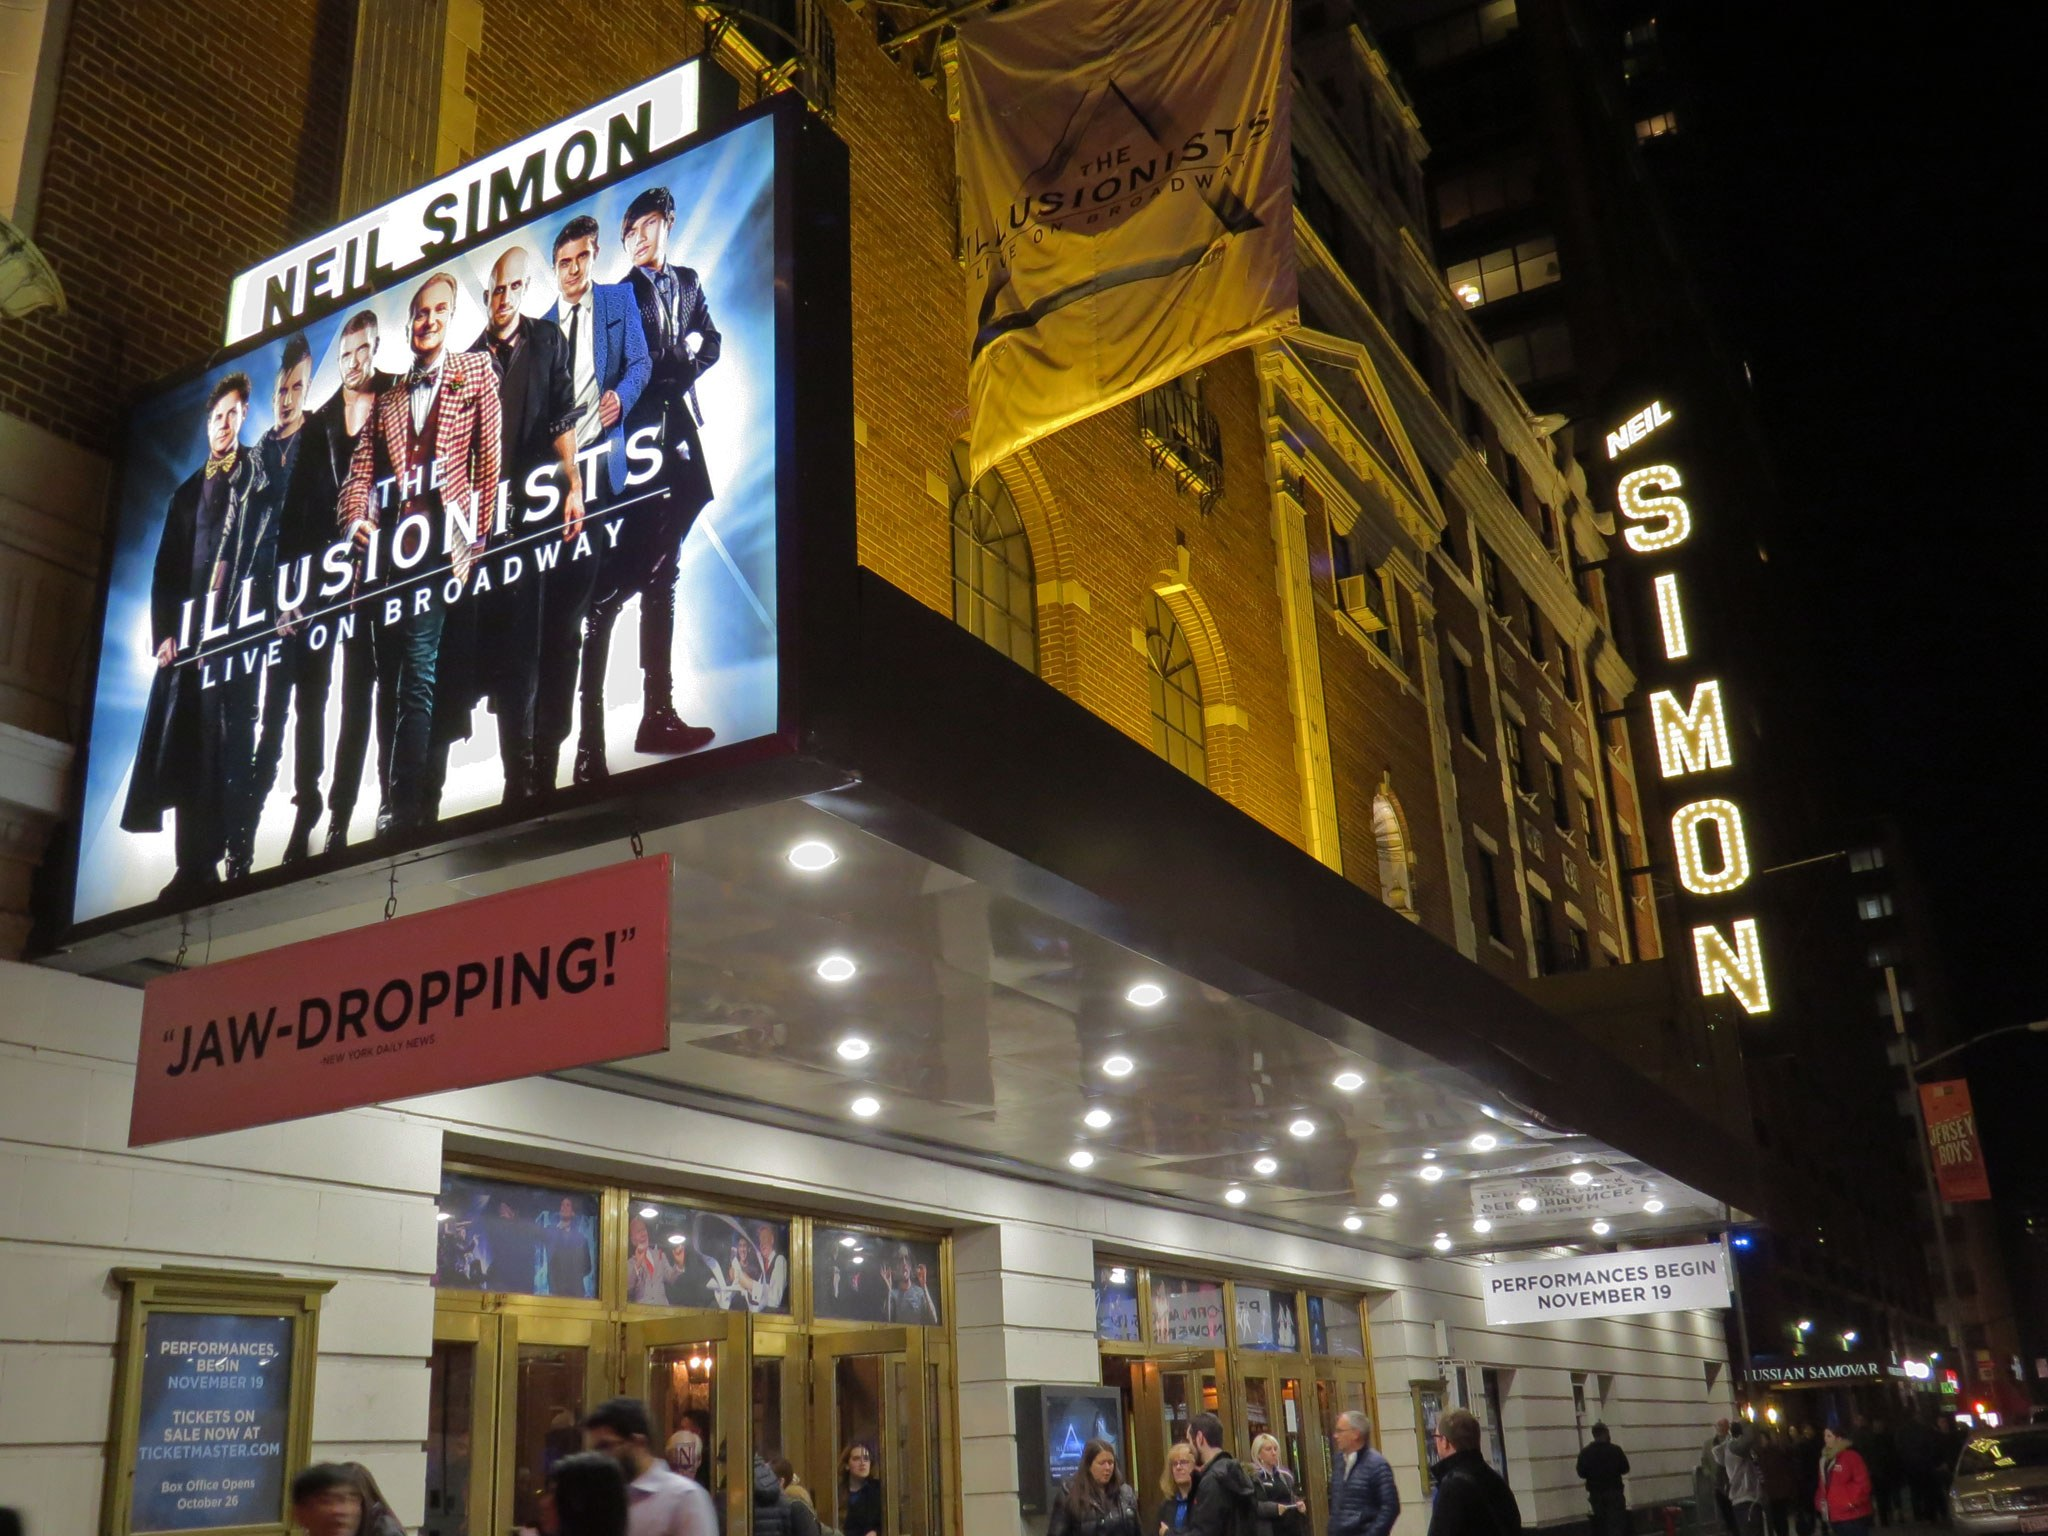 The Illusionists: Live on Broadway (2015) Marquee